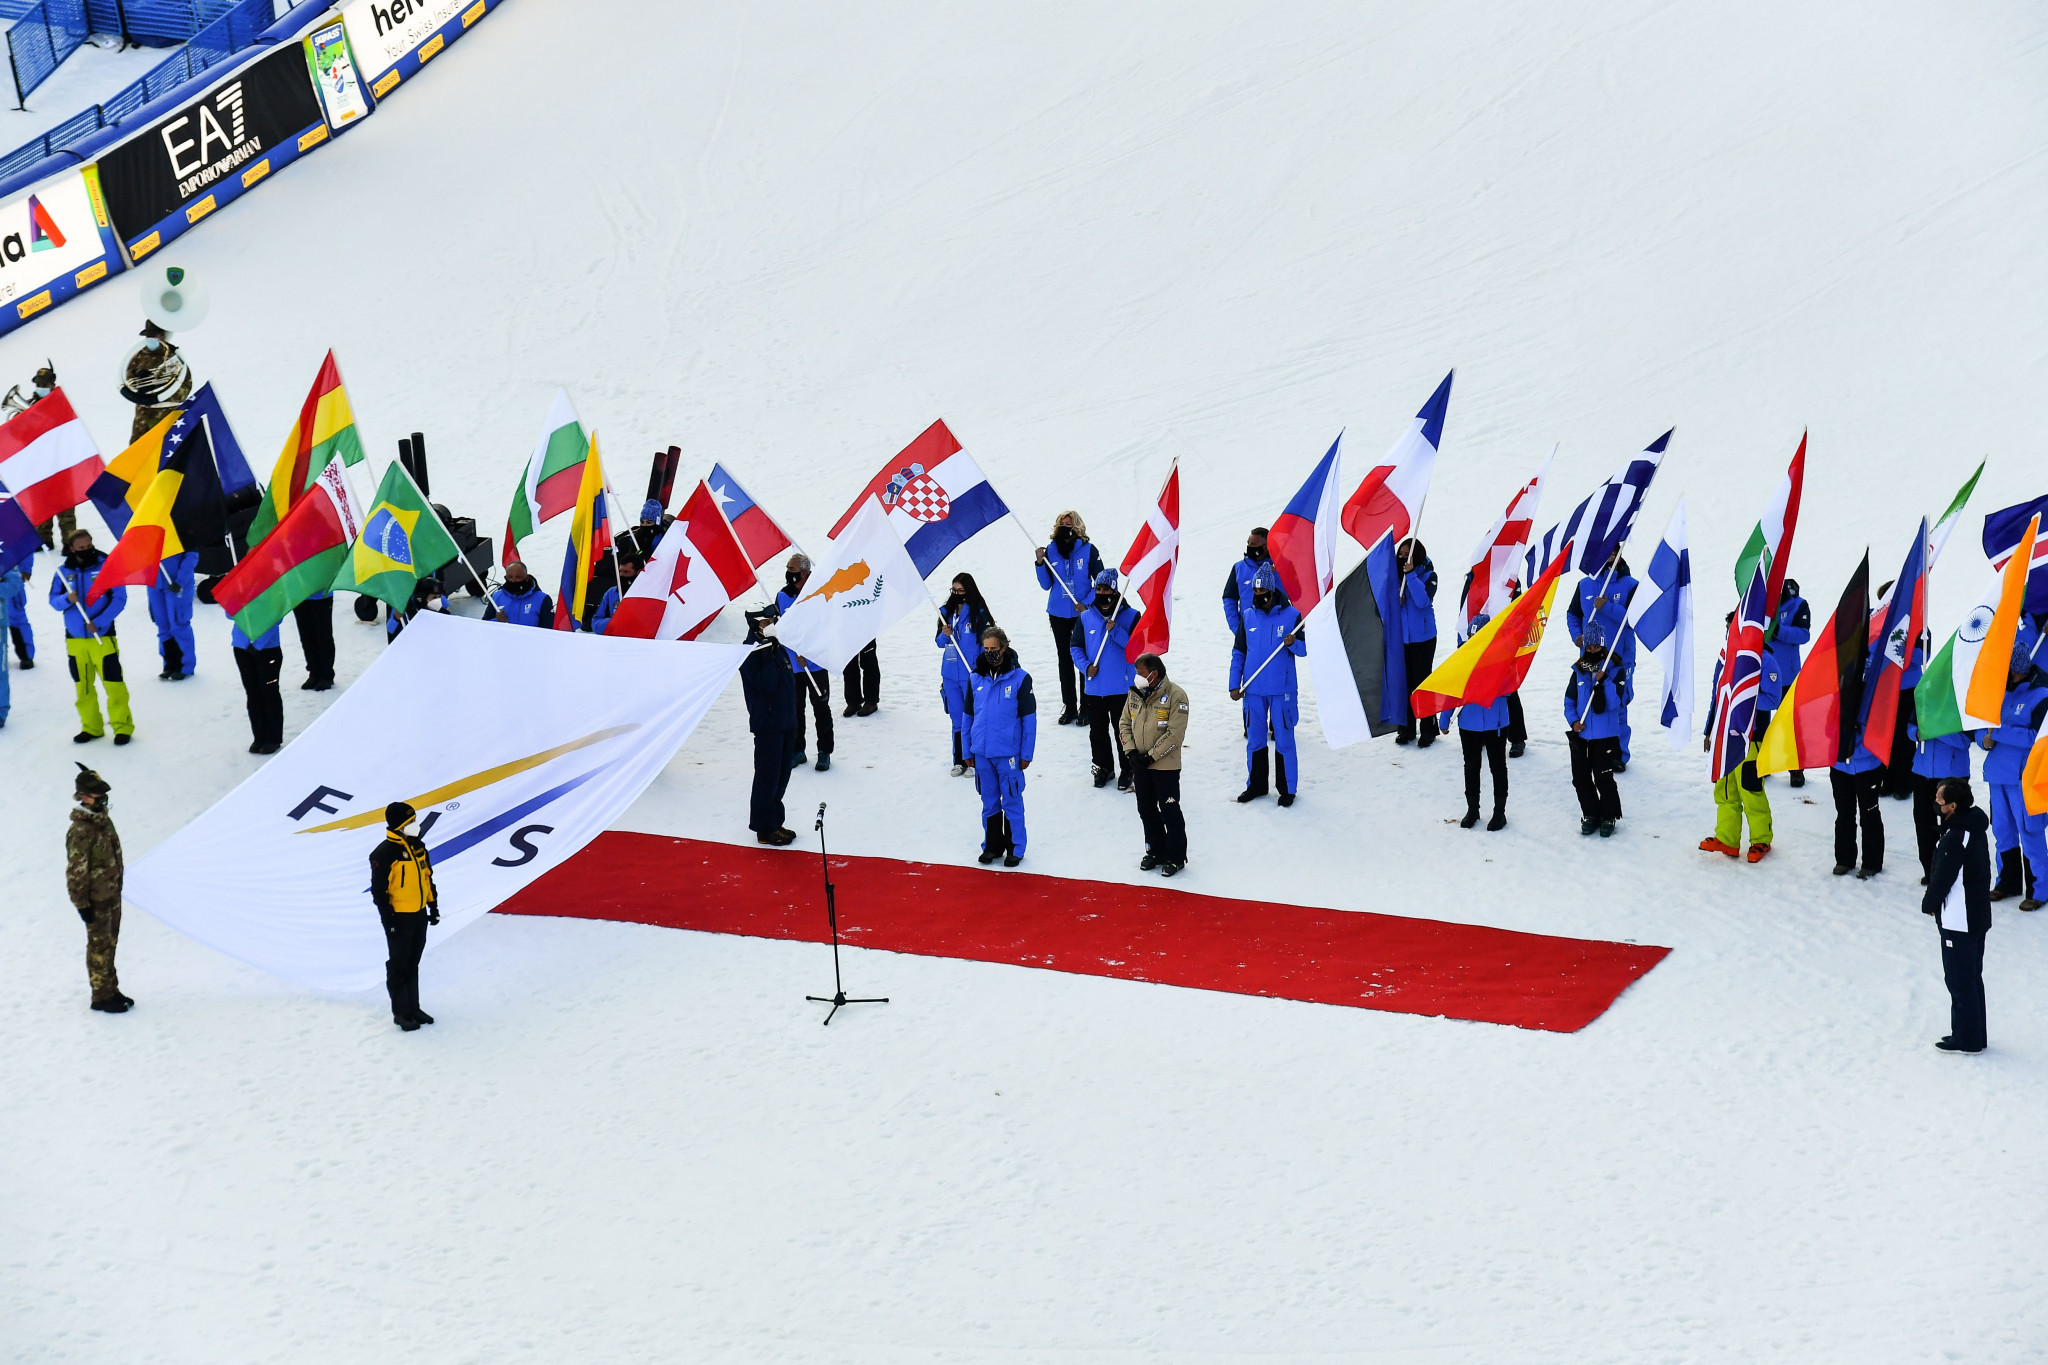 Michel Vion received the FIS flag during the Closing Ceremony of the 2021 Alpine Ski World Championships ©Getty Images